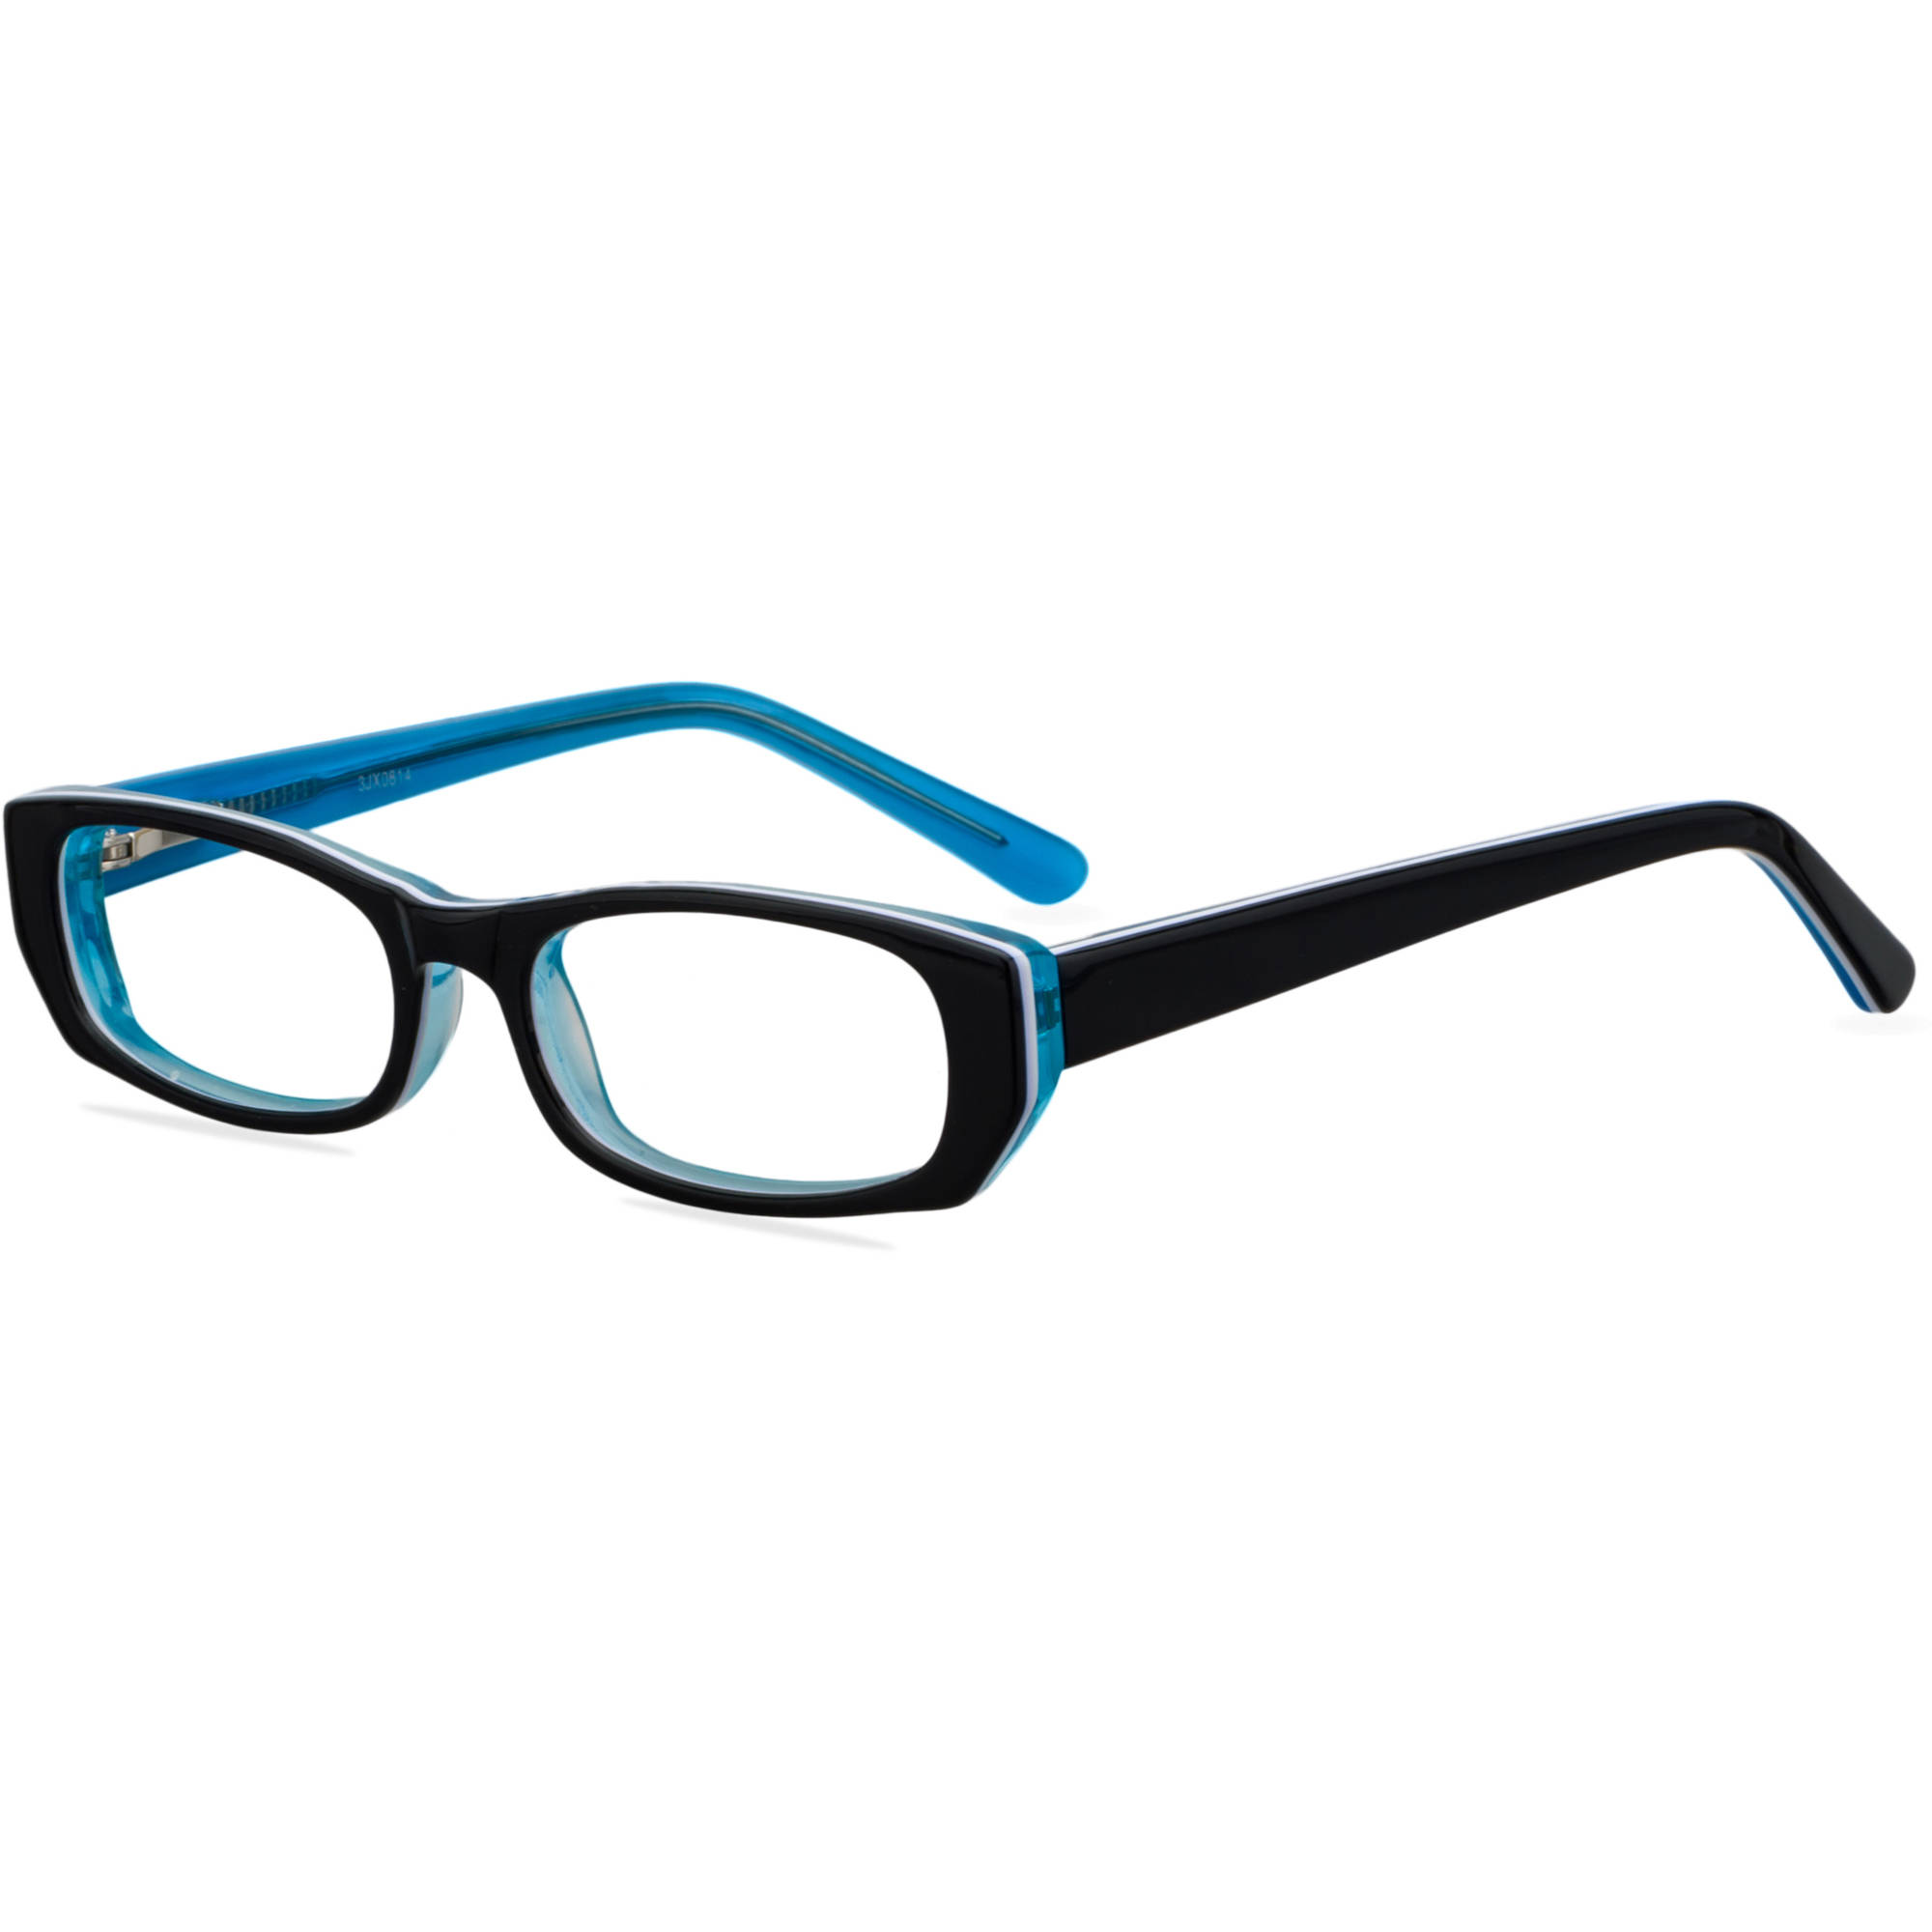 Contour Youths Prescription Glasses, FM11369 Black/Blue - Walmart.com at Walmart - Vision Center in Lewisburg, TN | Tuggl